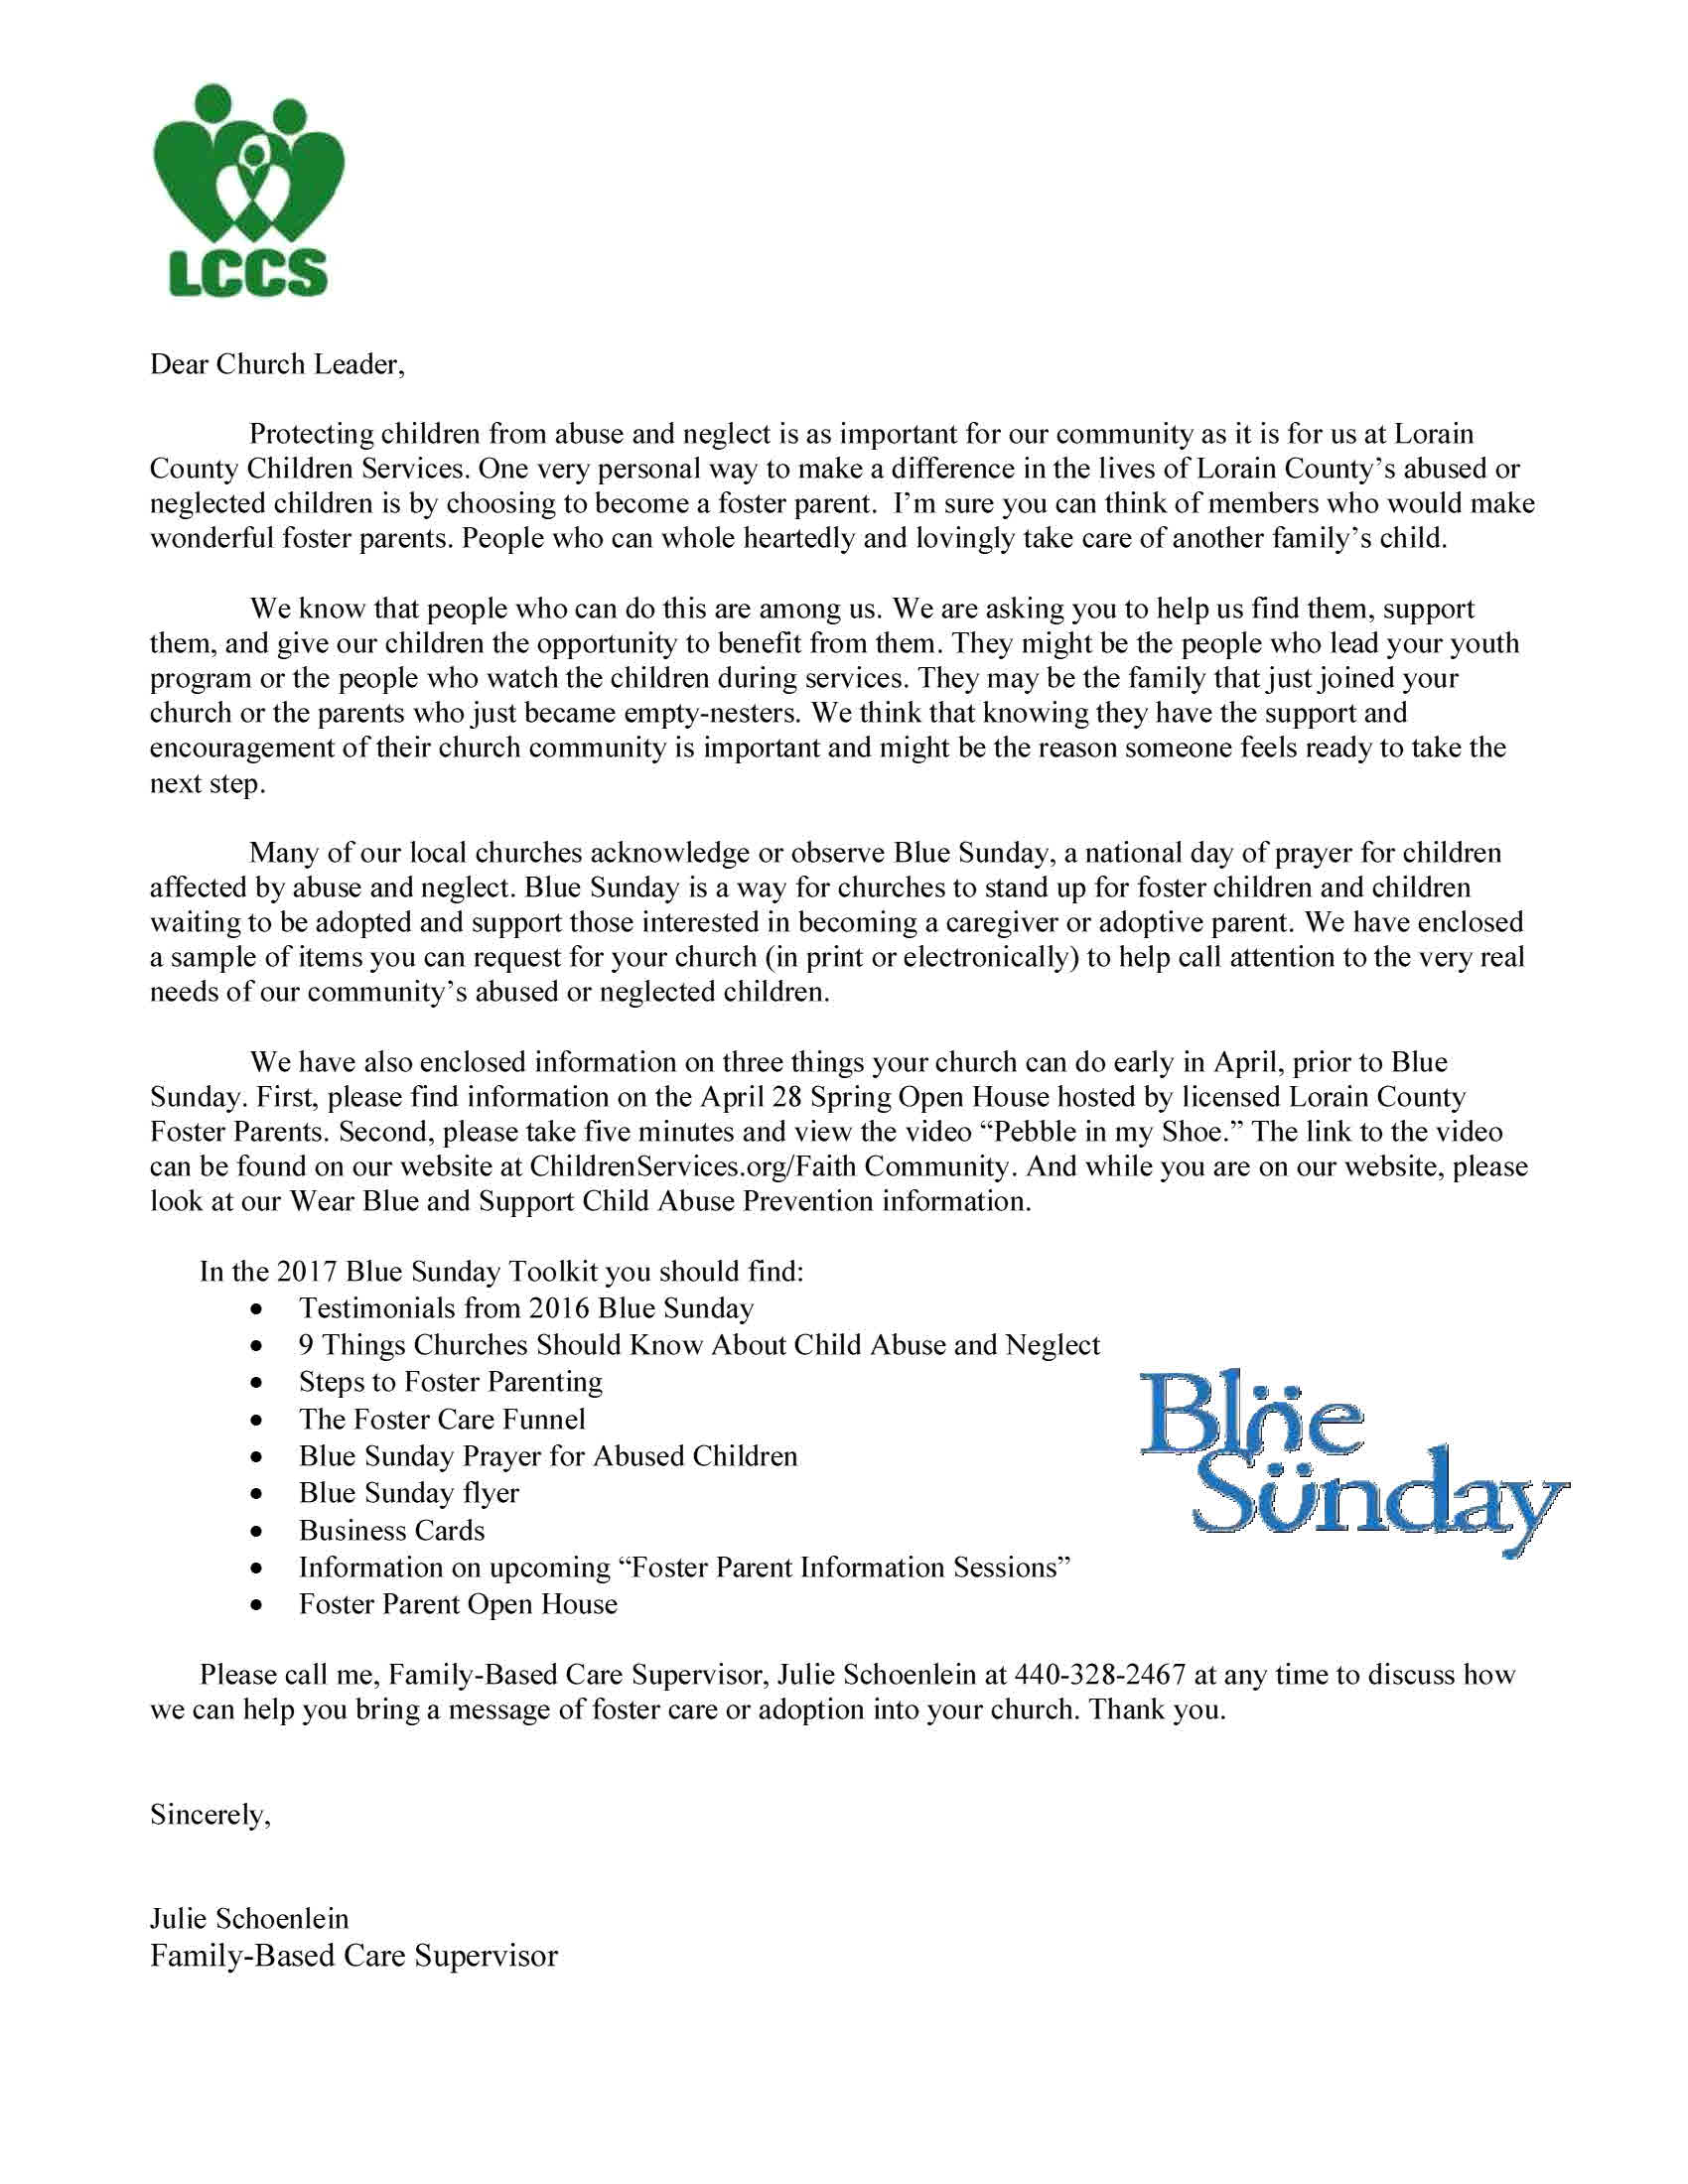 welcome letter blue sunday flyer blue sunday prayer 9 things churches should know about child abuse